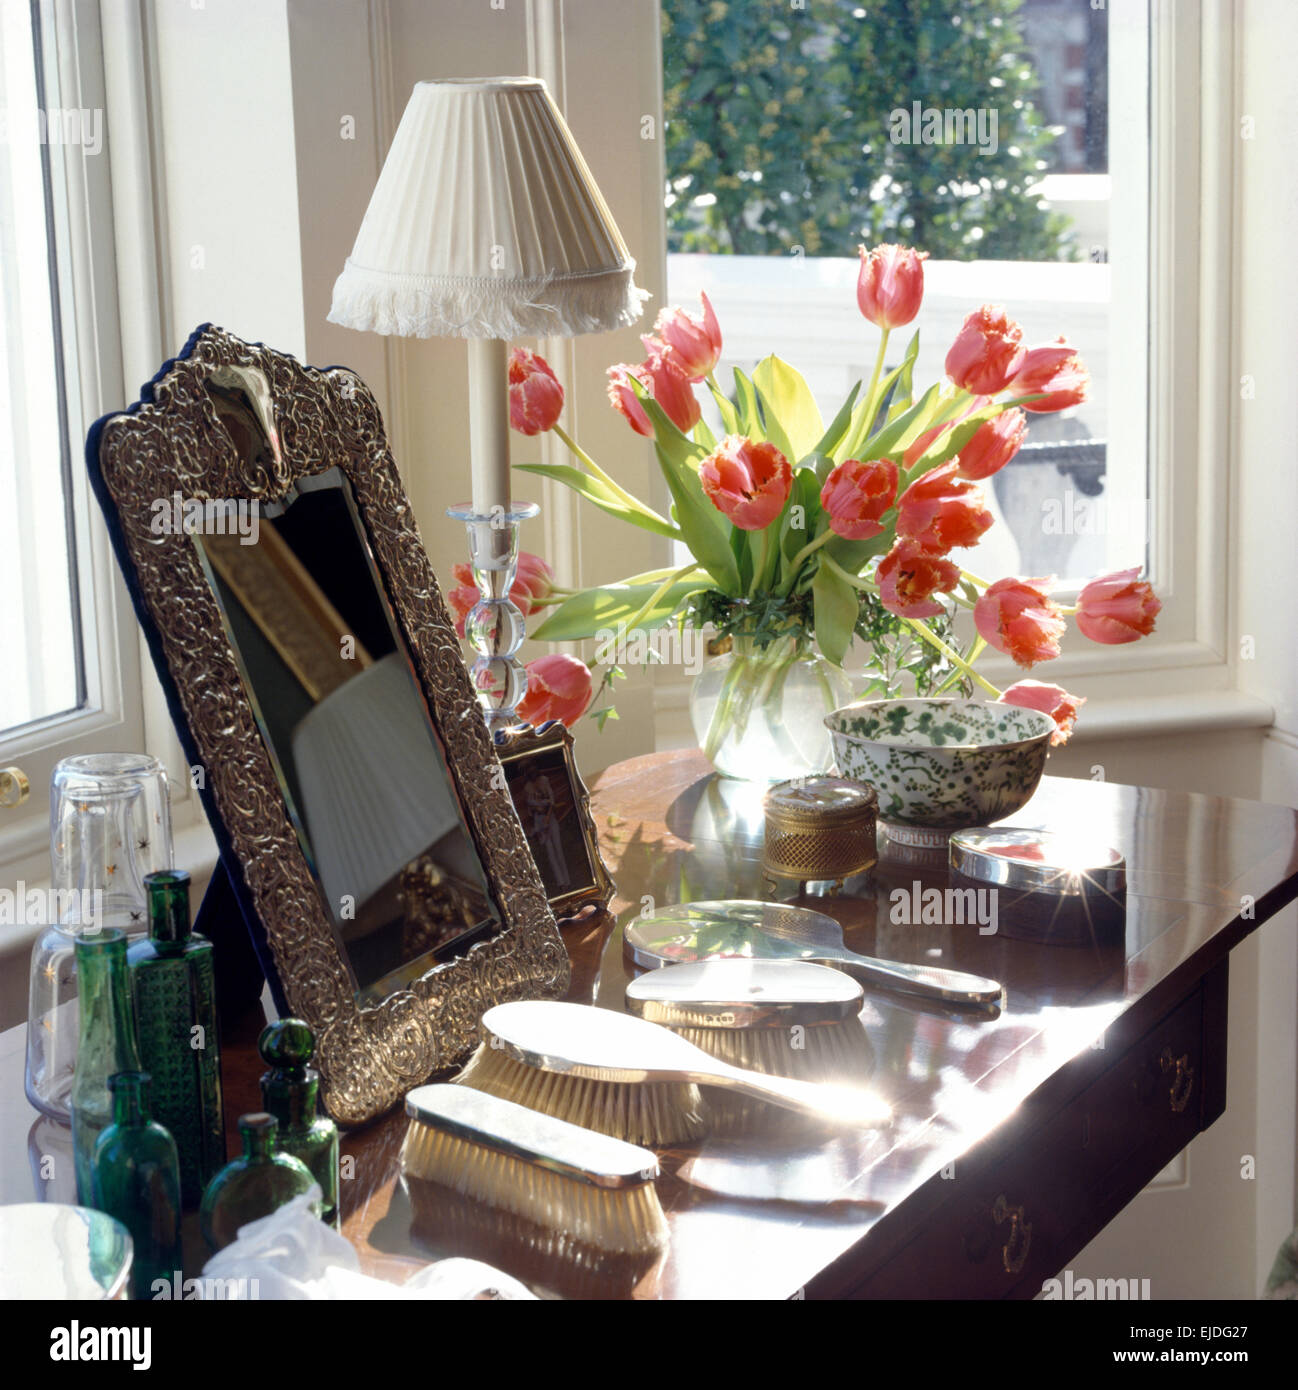 Close-up of silver framed mirror and silver vanity set with vase of red tulips on dressing table - Stock Image